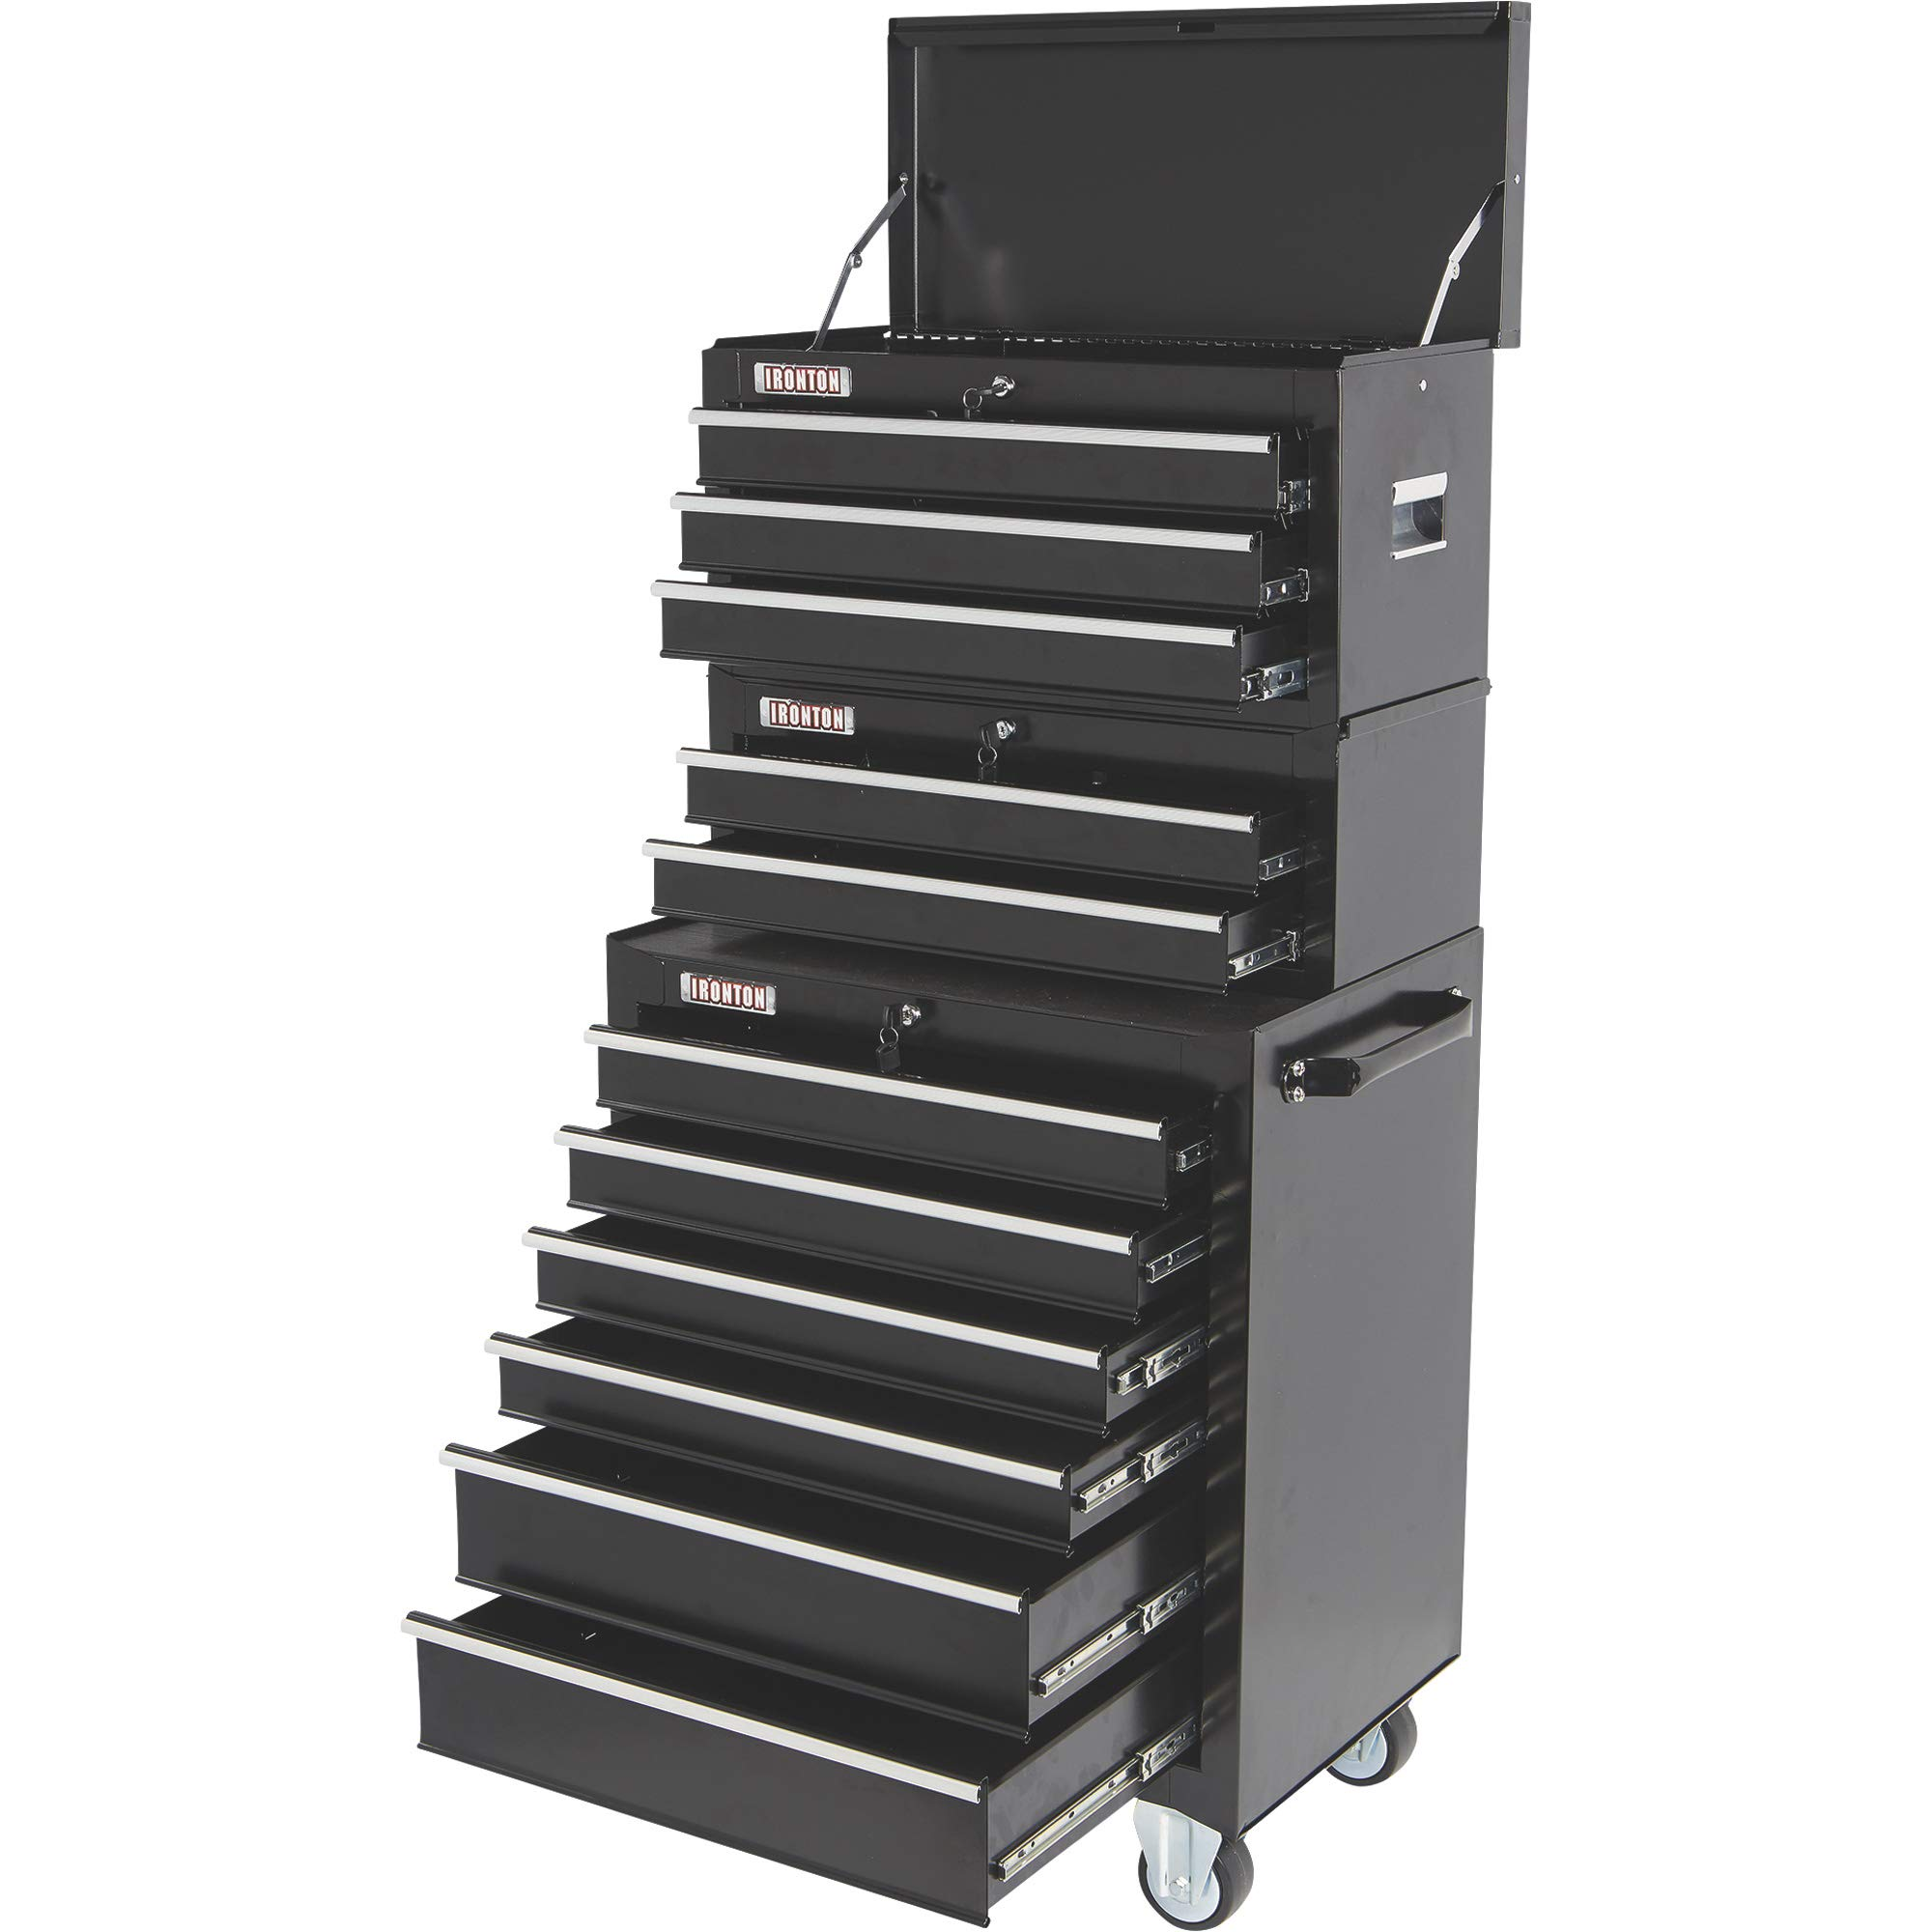 Ironton 26in. 6-Drawer Rolling Tool Chest - 26.75in.W x 18in.D x 33.3in.H by Ironton (Image #8)